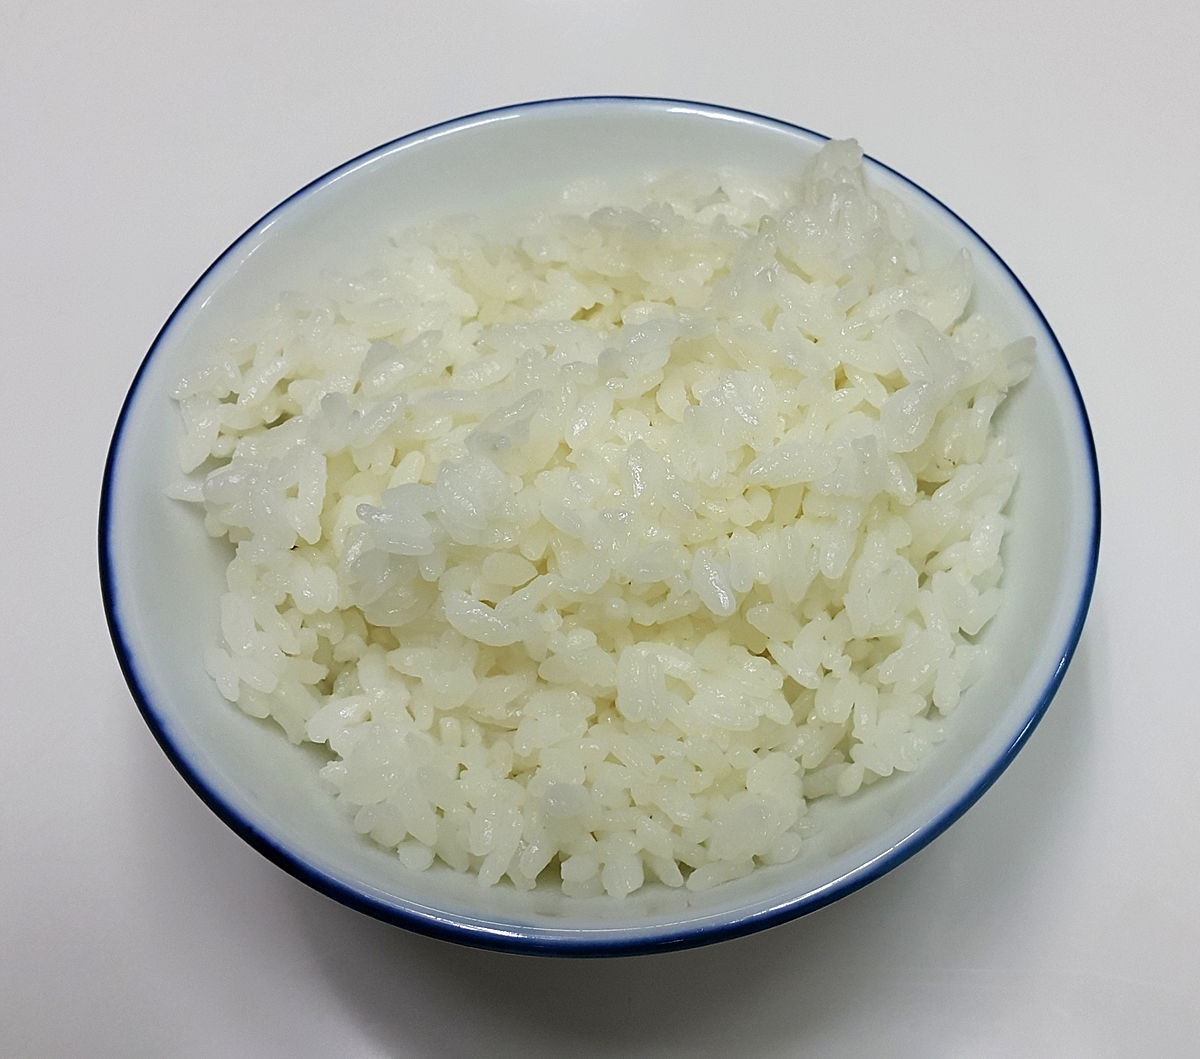 Cooked rice - Wikipedia